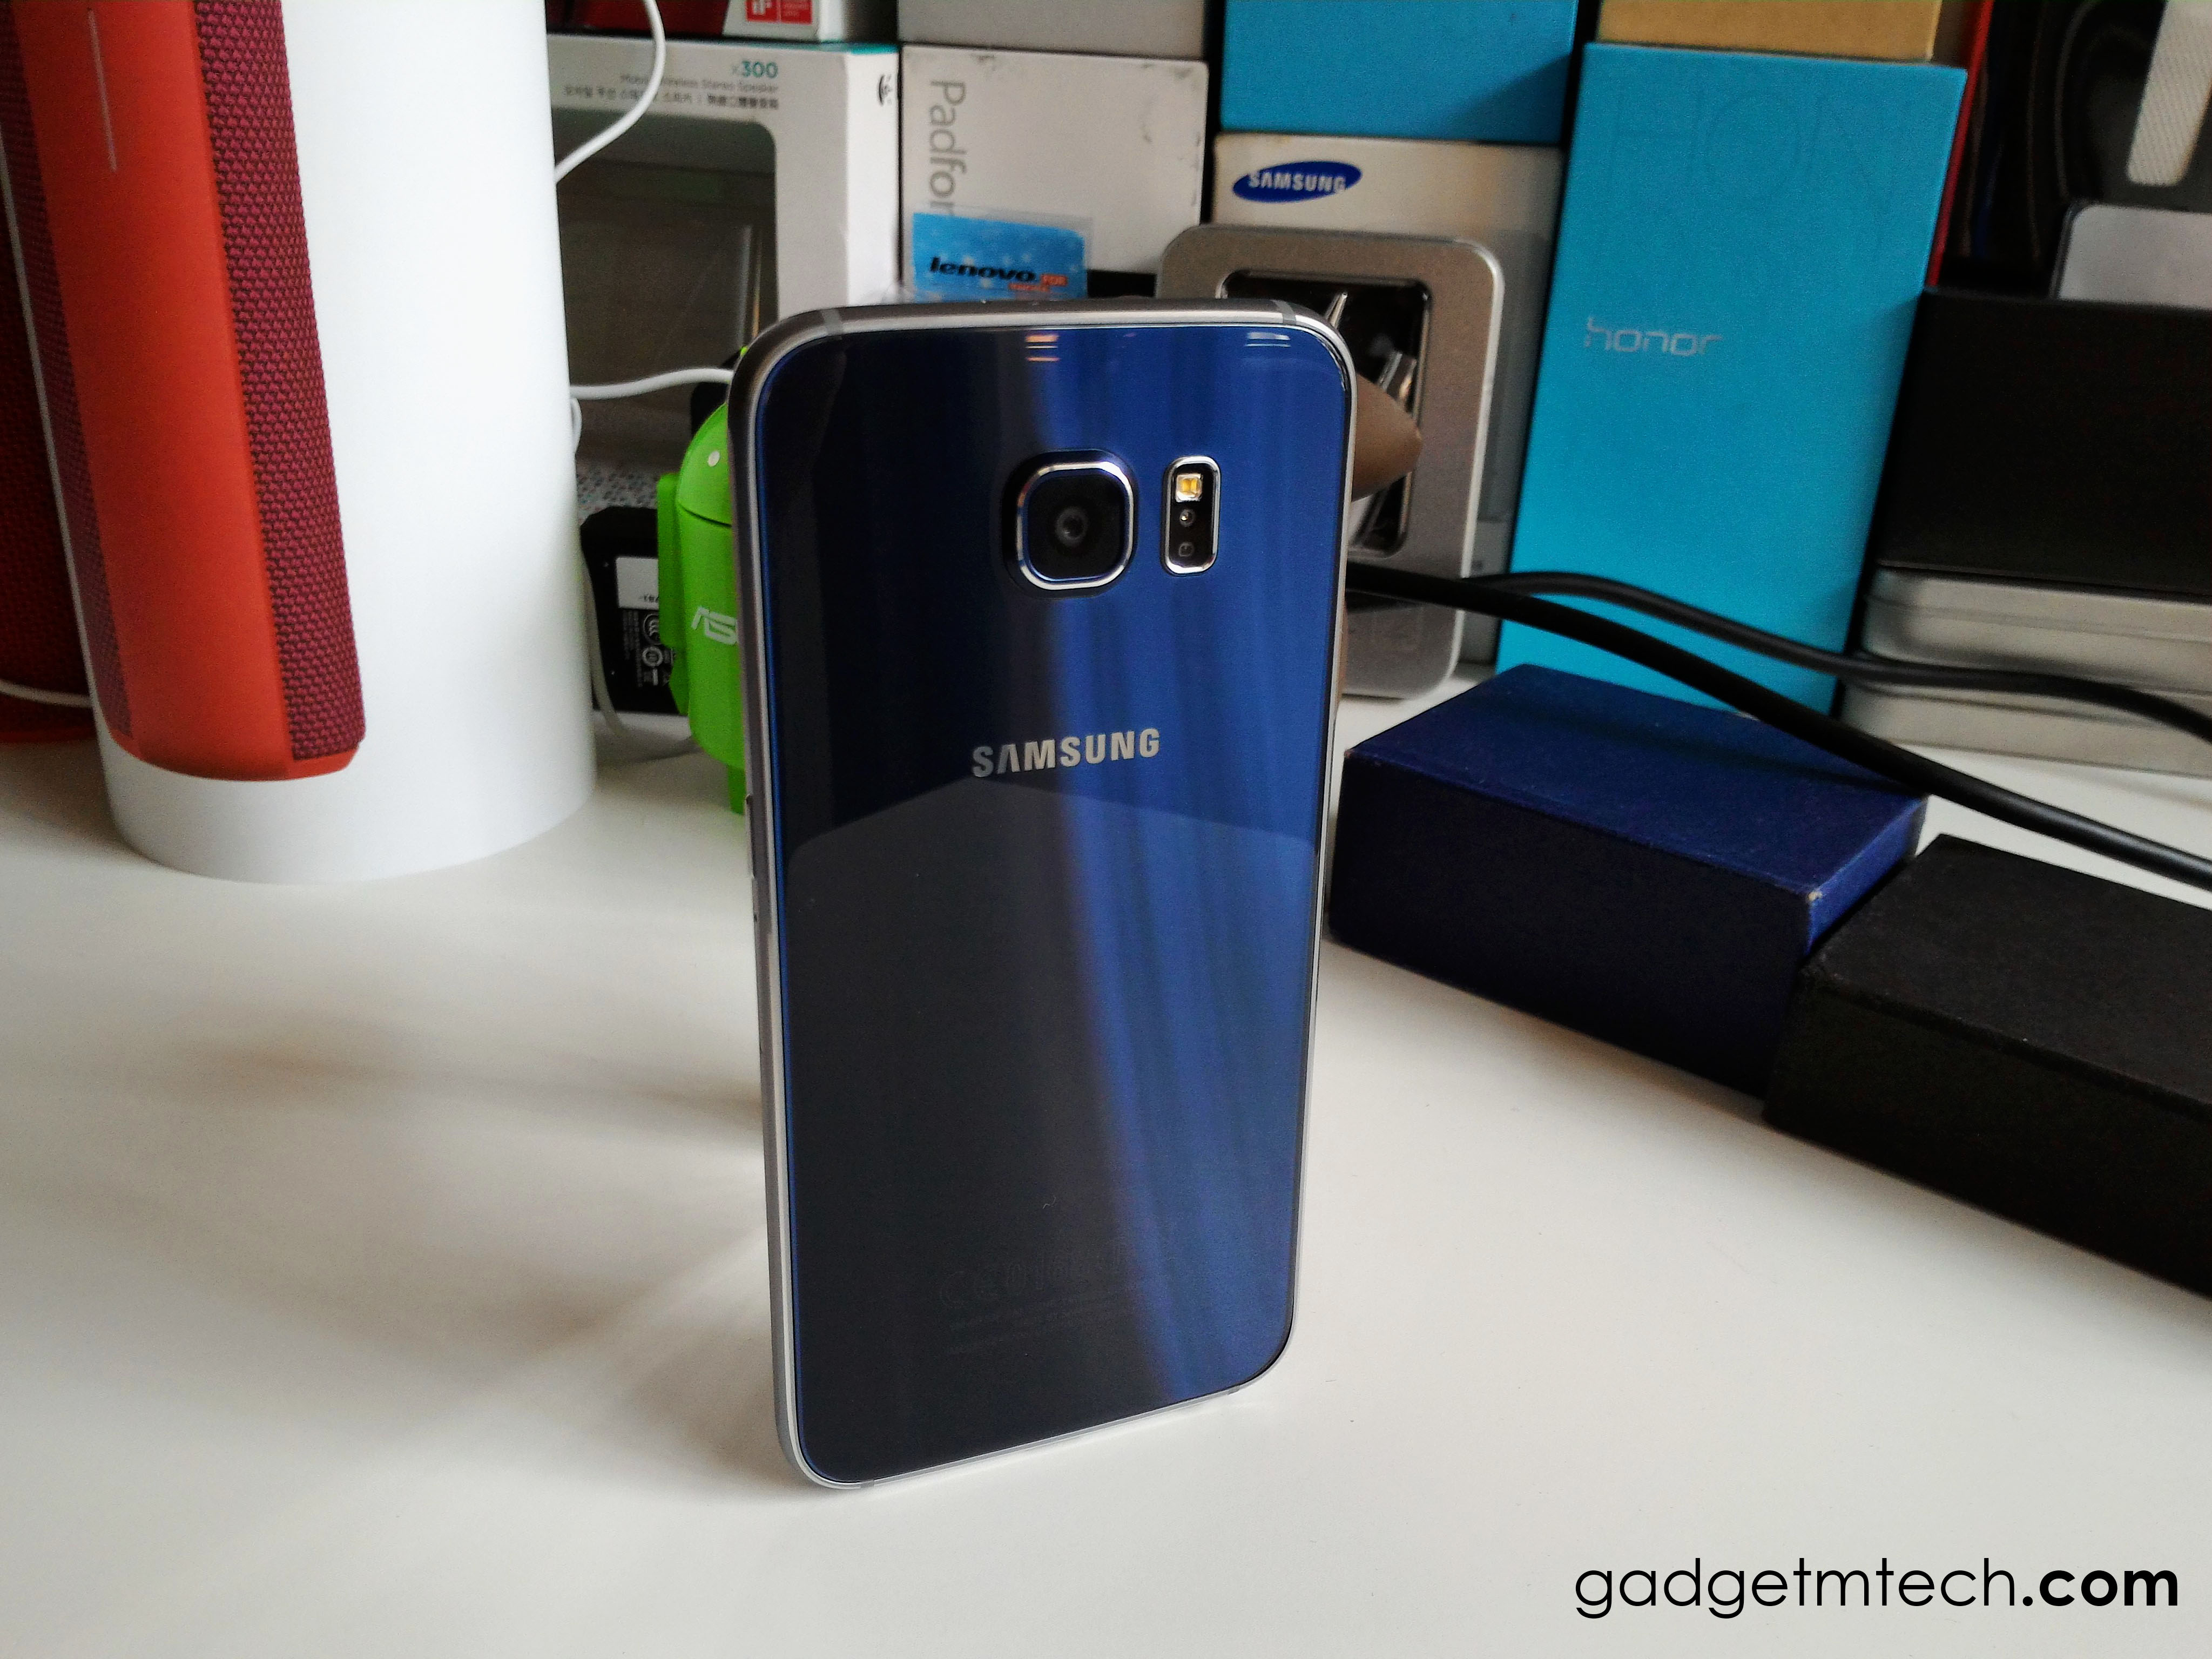 Samsung Galaxy S6 Review - 4